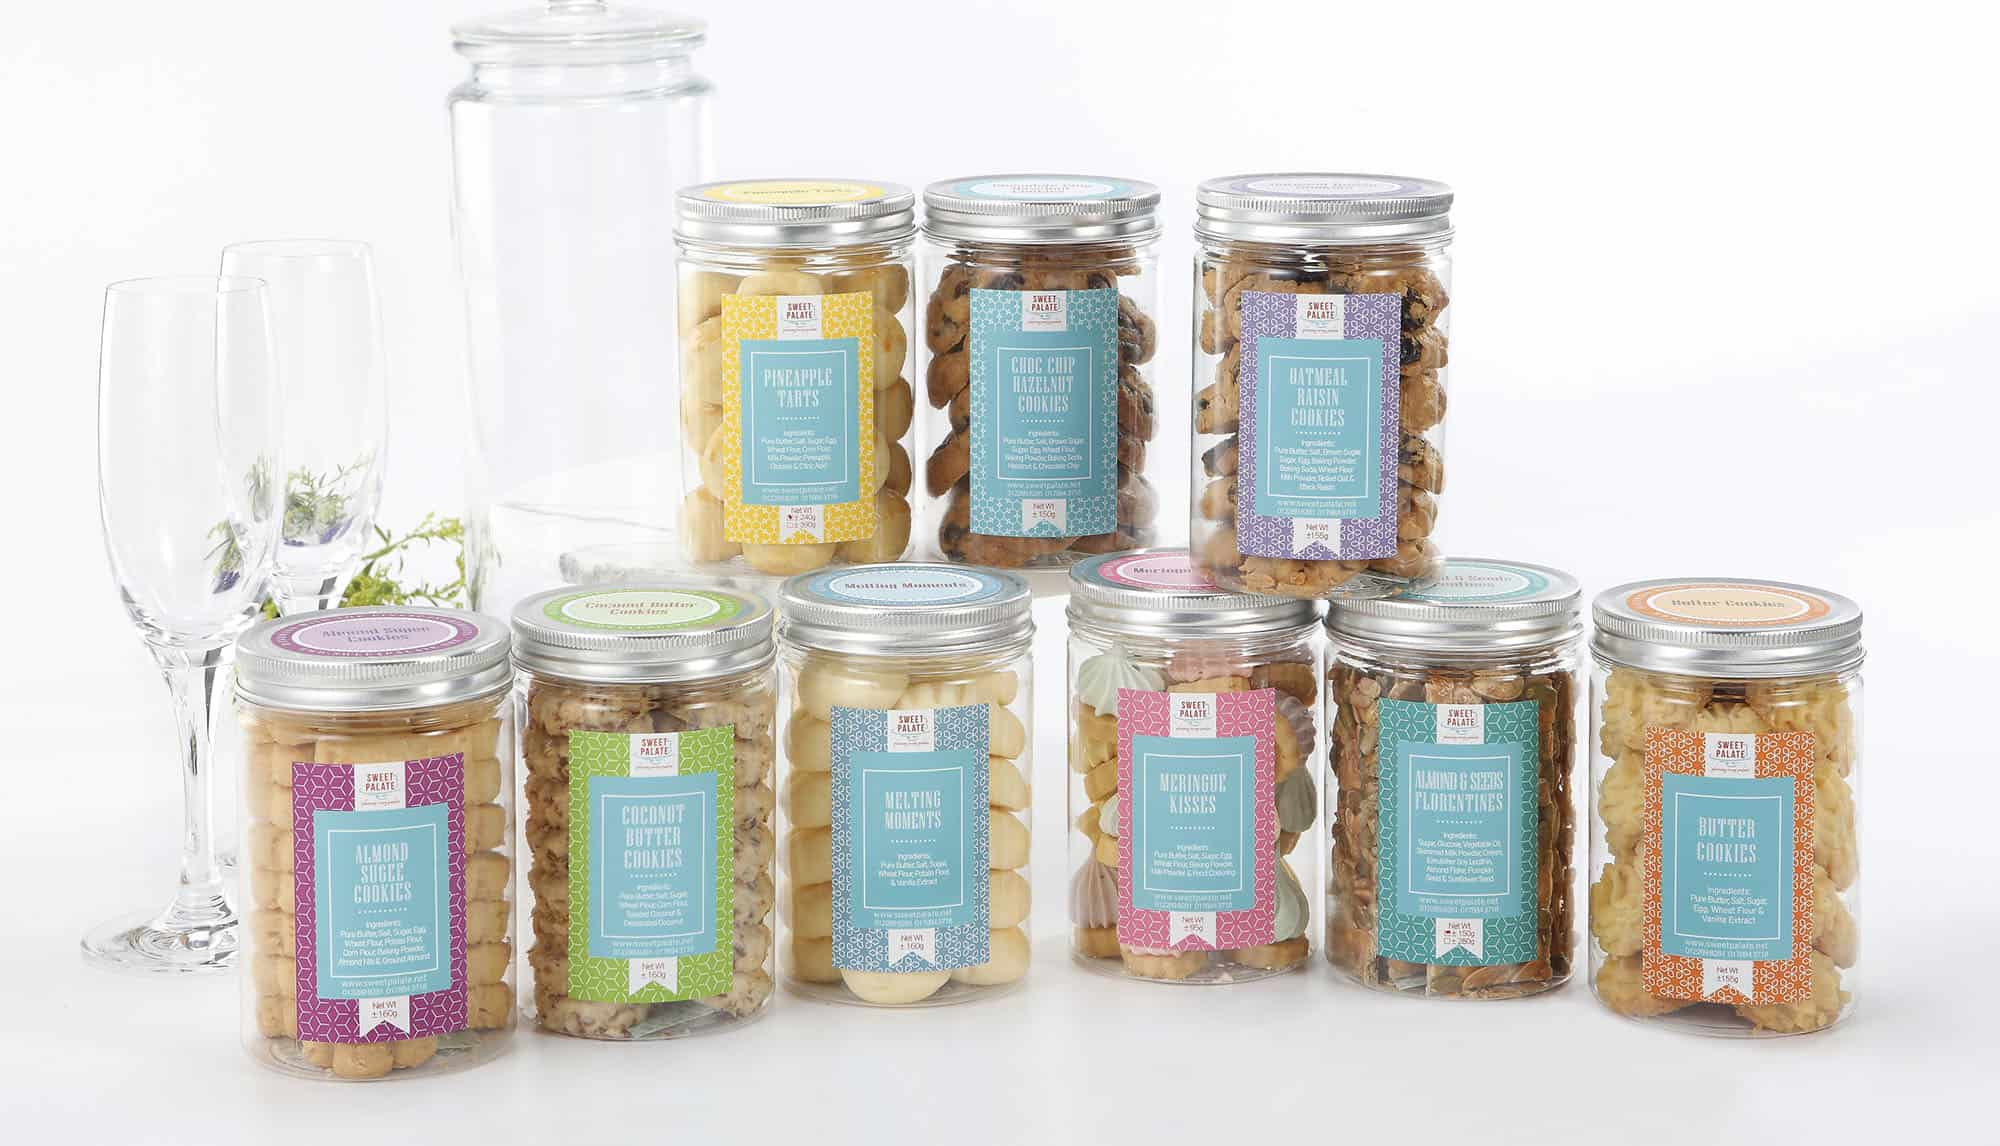 Sweet Palate Cookies Jar Series